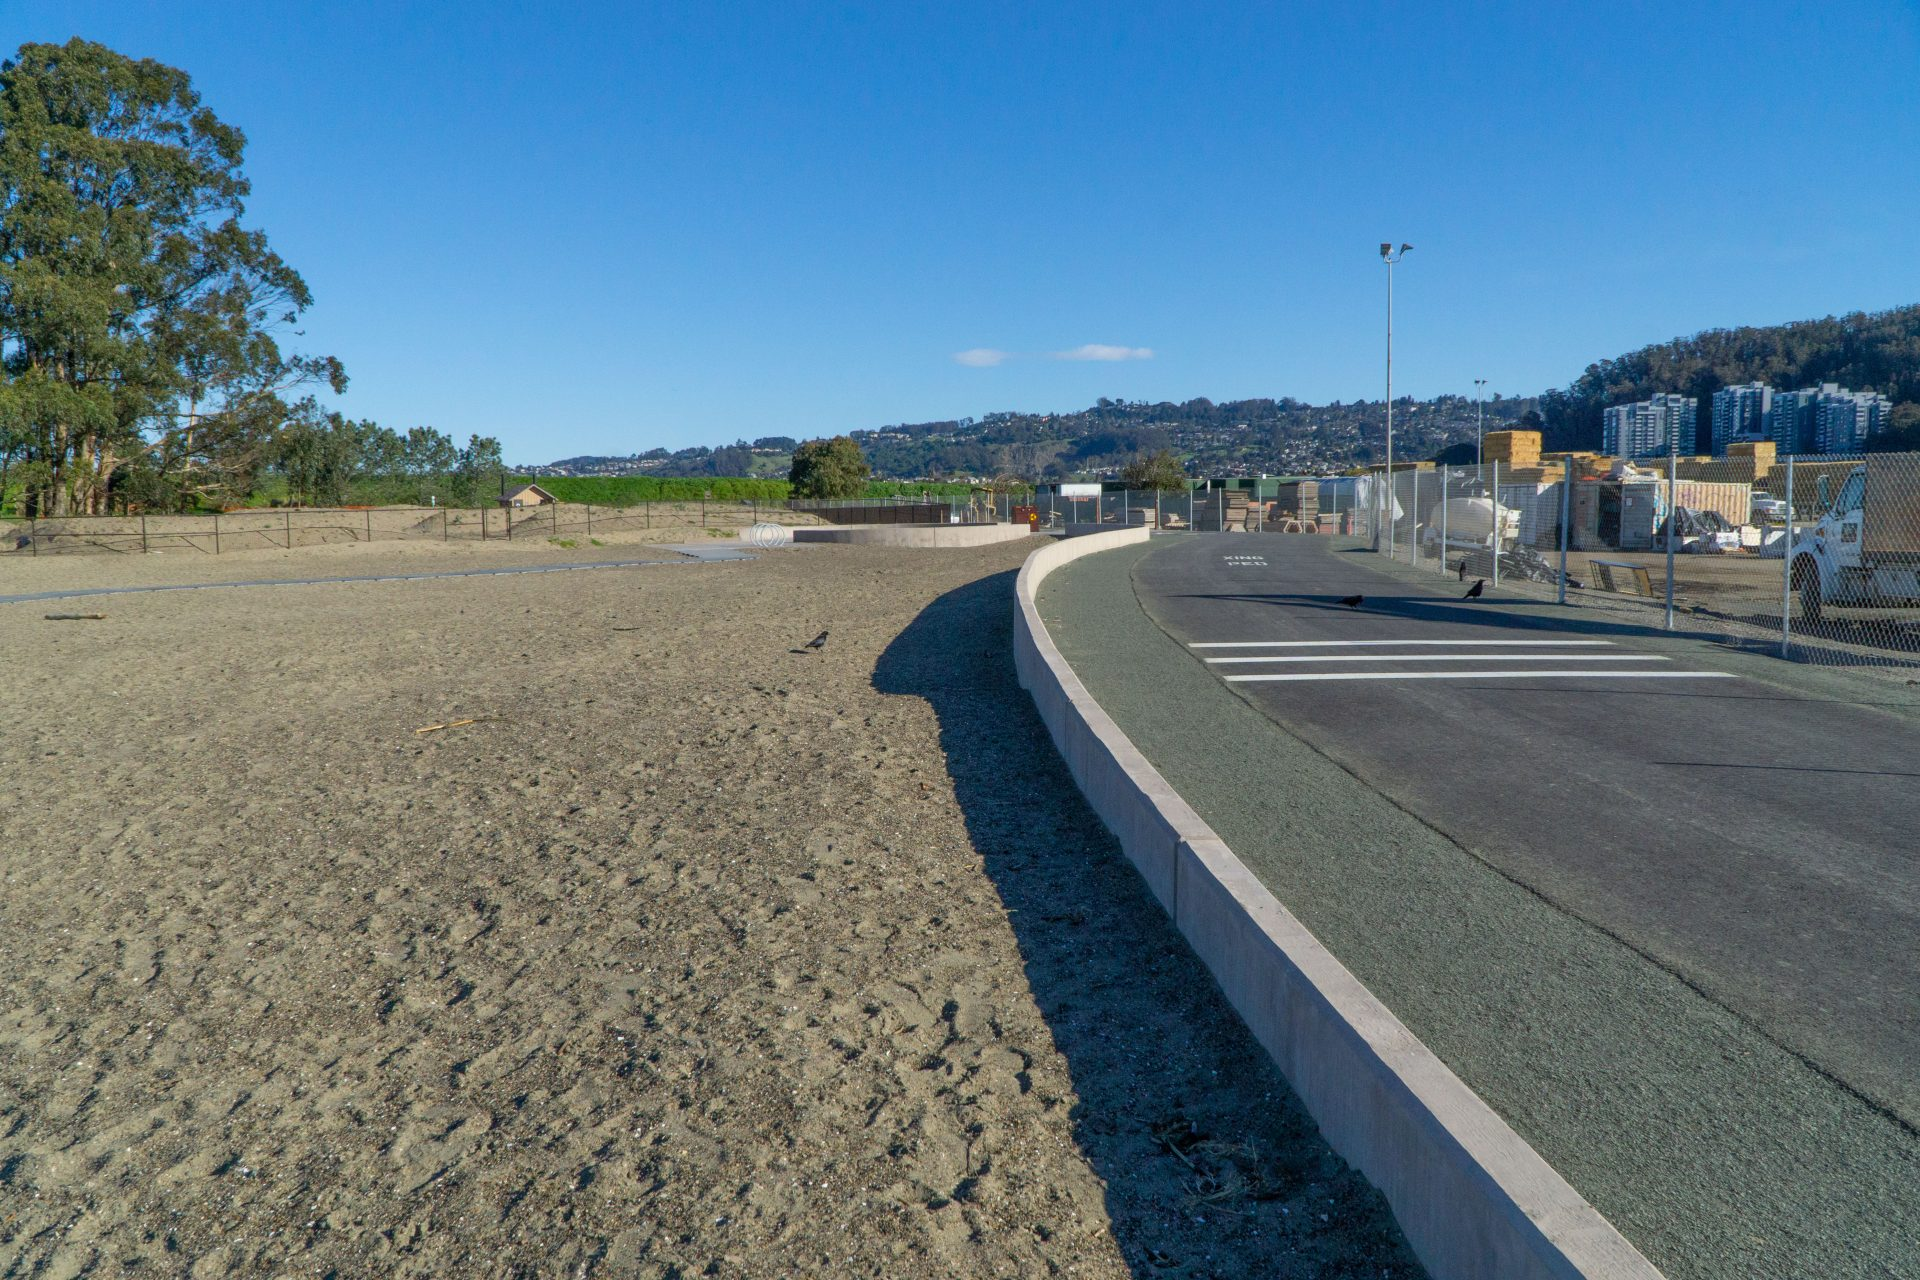 beach on left, short concrete wall, black paved road